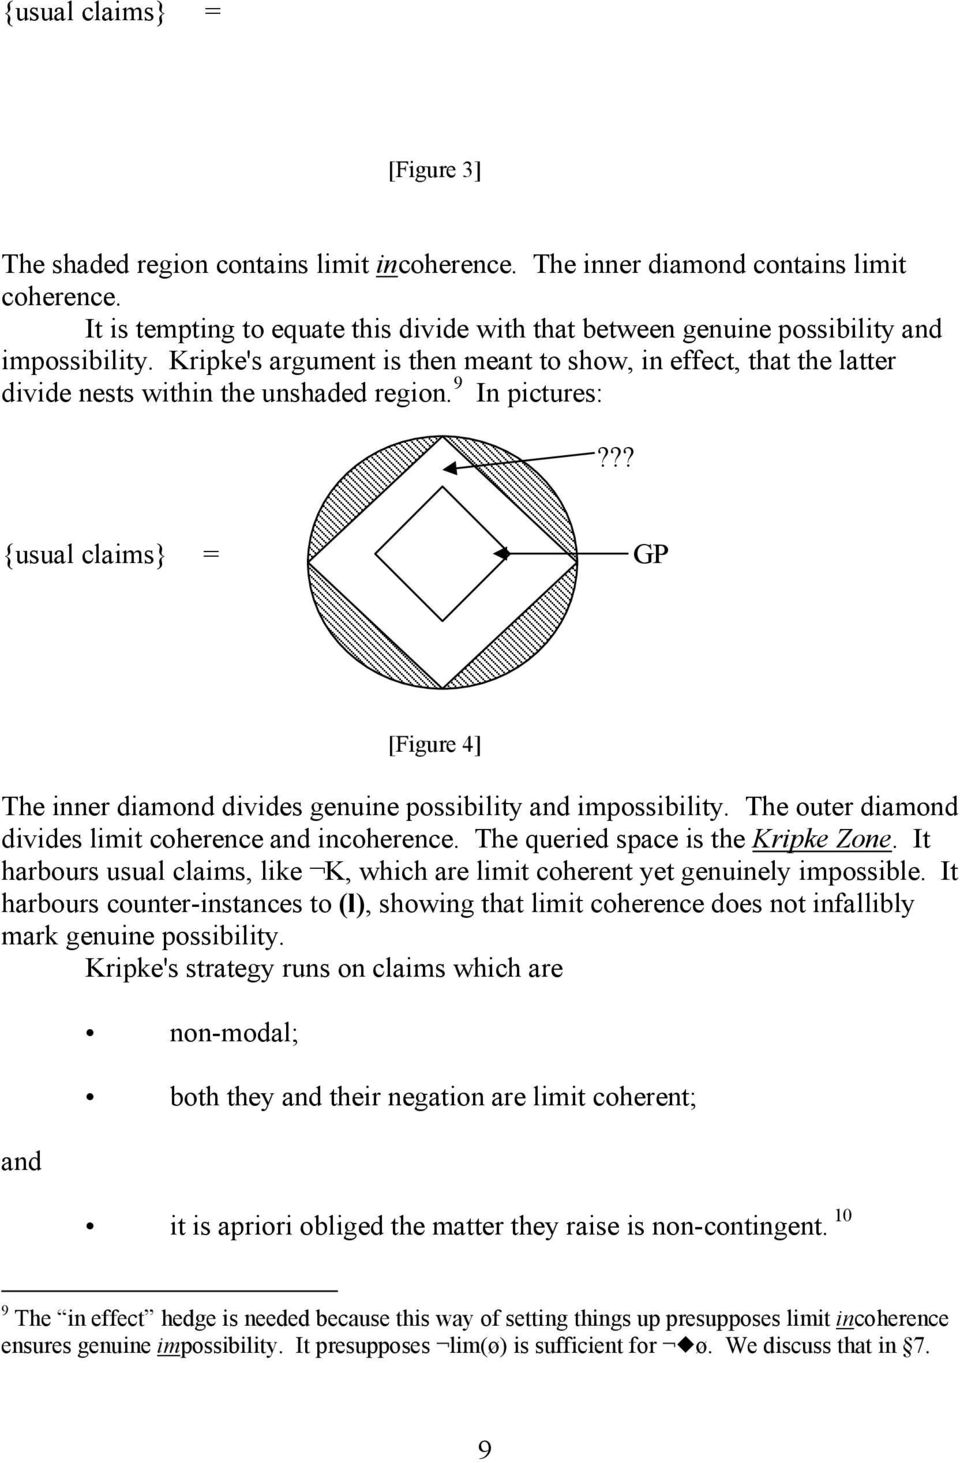 Kripke's argument is then meant to show, in effect, that the latter divide nests within the unshaded region. 9 In pictures:?